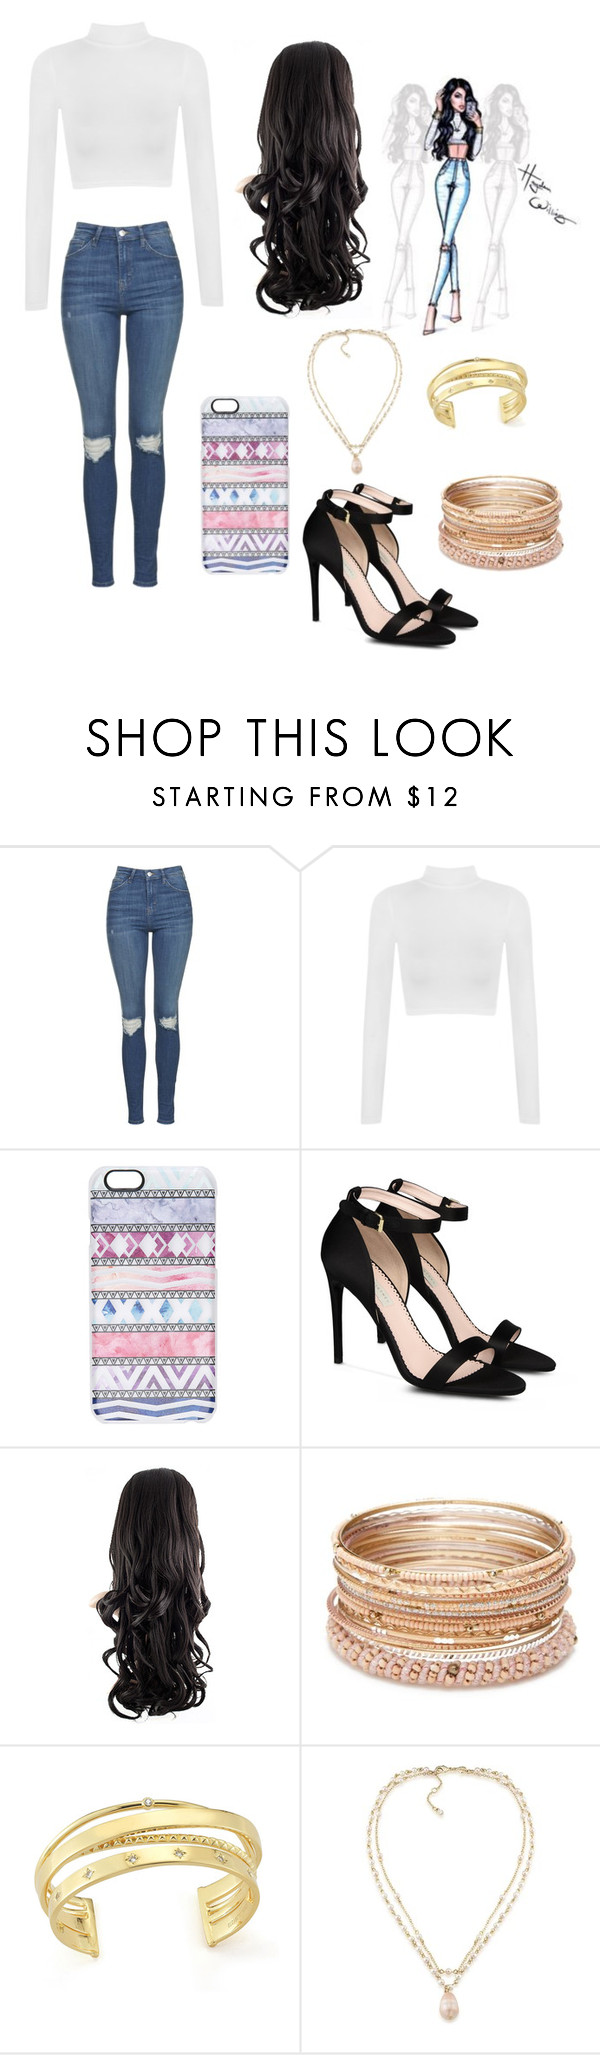 """""""Untitled #338"""" by lovebeingwacky ❤ liked on Polyvore featuring Topshop, WearAll, Casetify, STELLA McCARTNEY, Red Camel, Elizabeth and James and Carolee"""